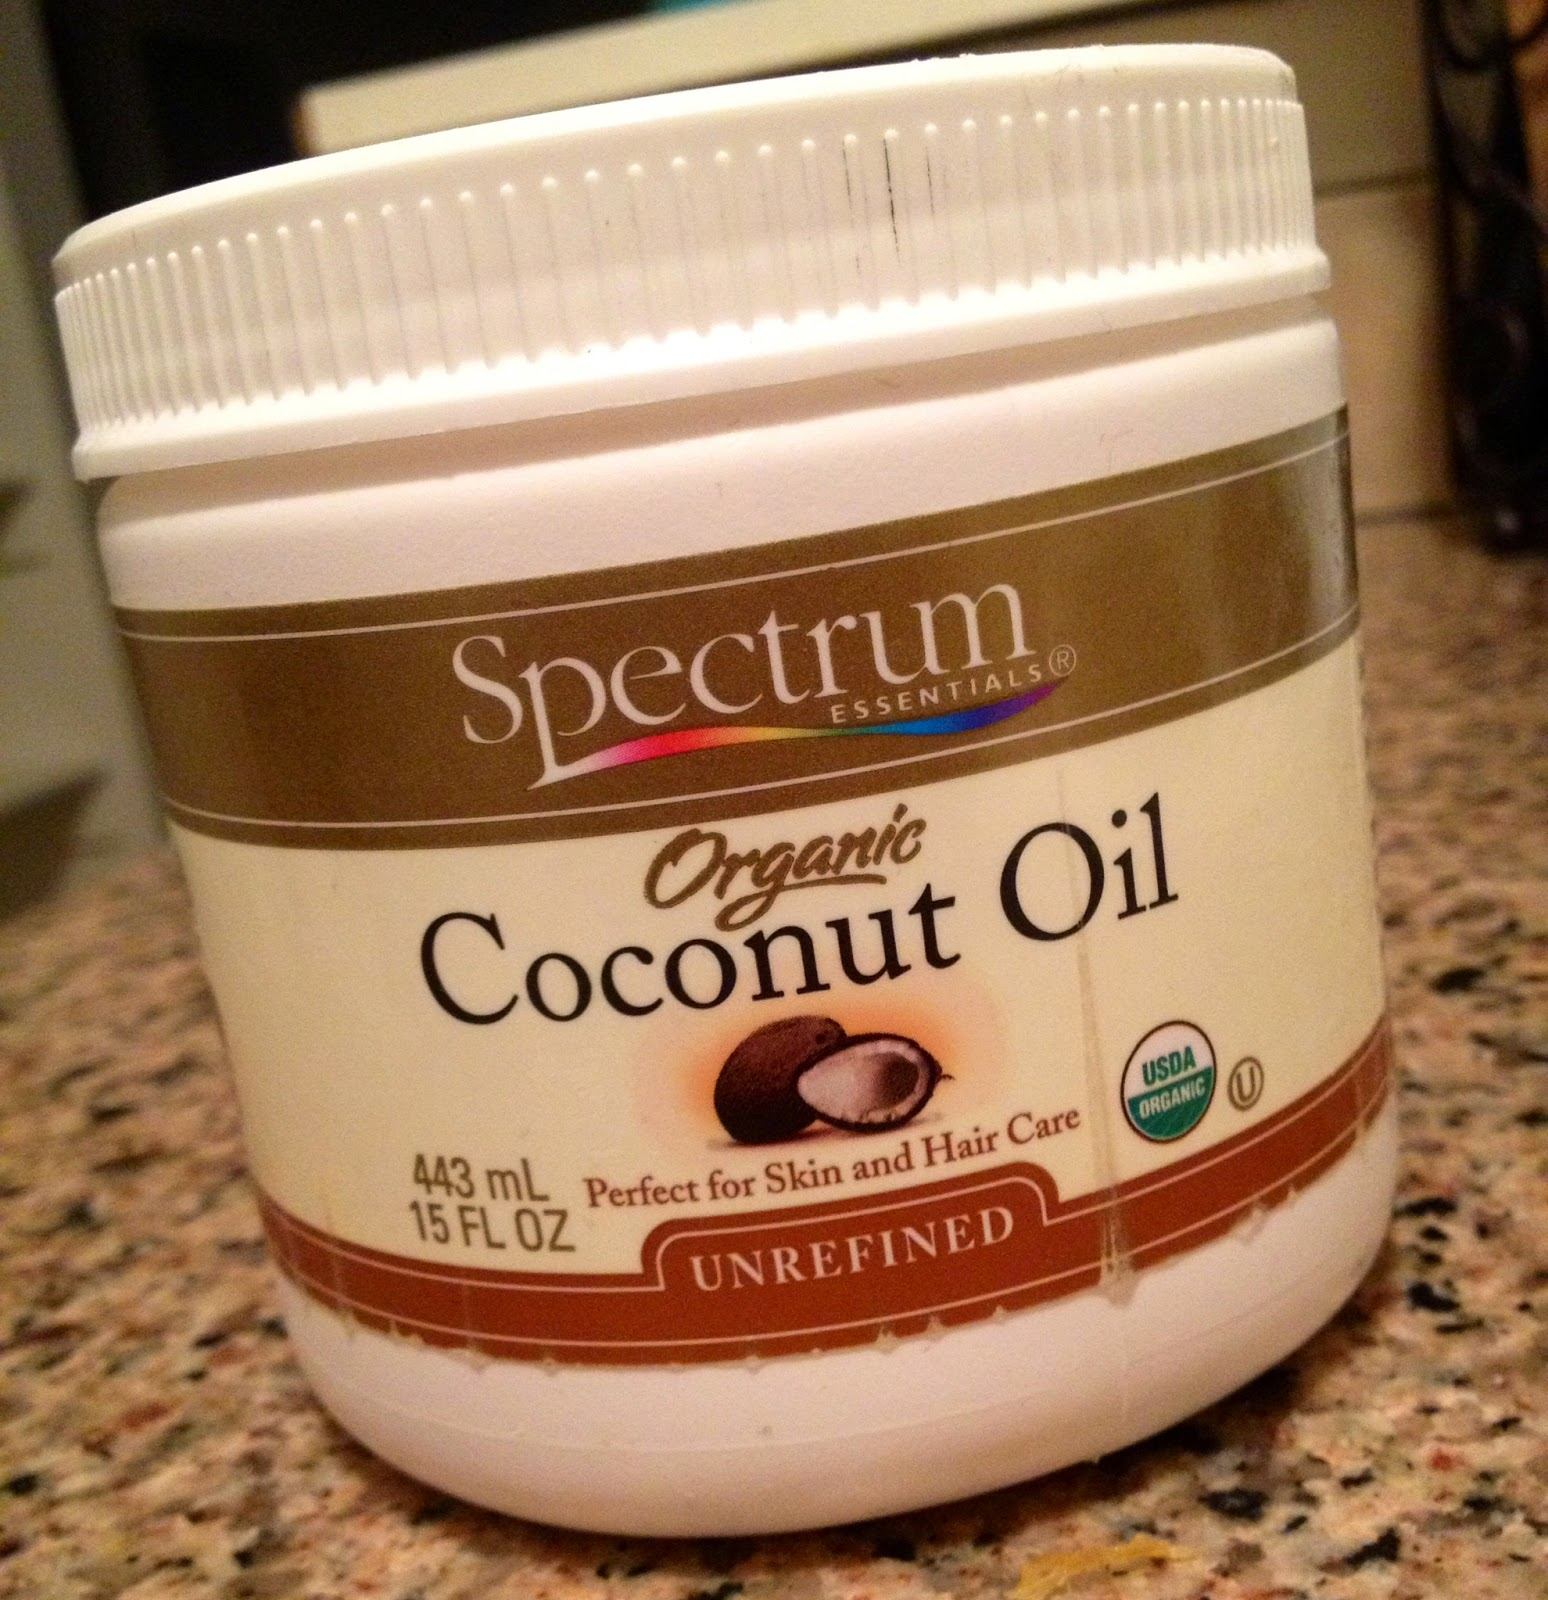 http://www.walgreens.com/store/c/spectrum-essentials-organic-coconut-oil-unrefined/ID=prod6198848-product